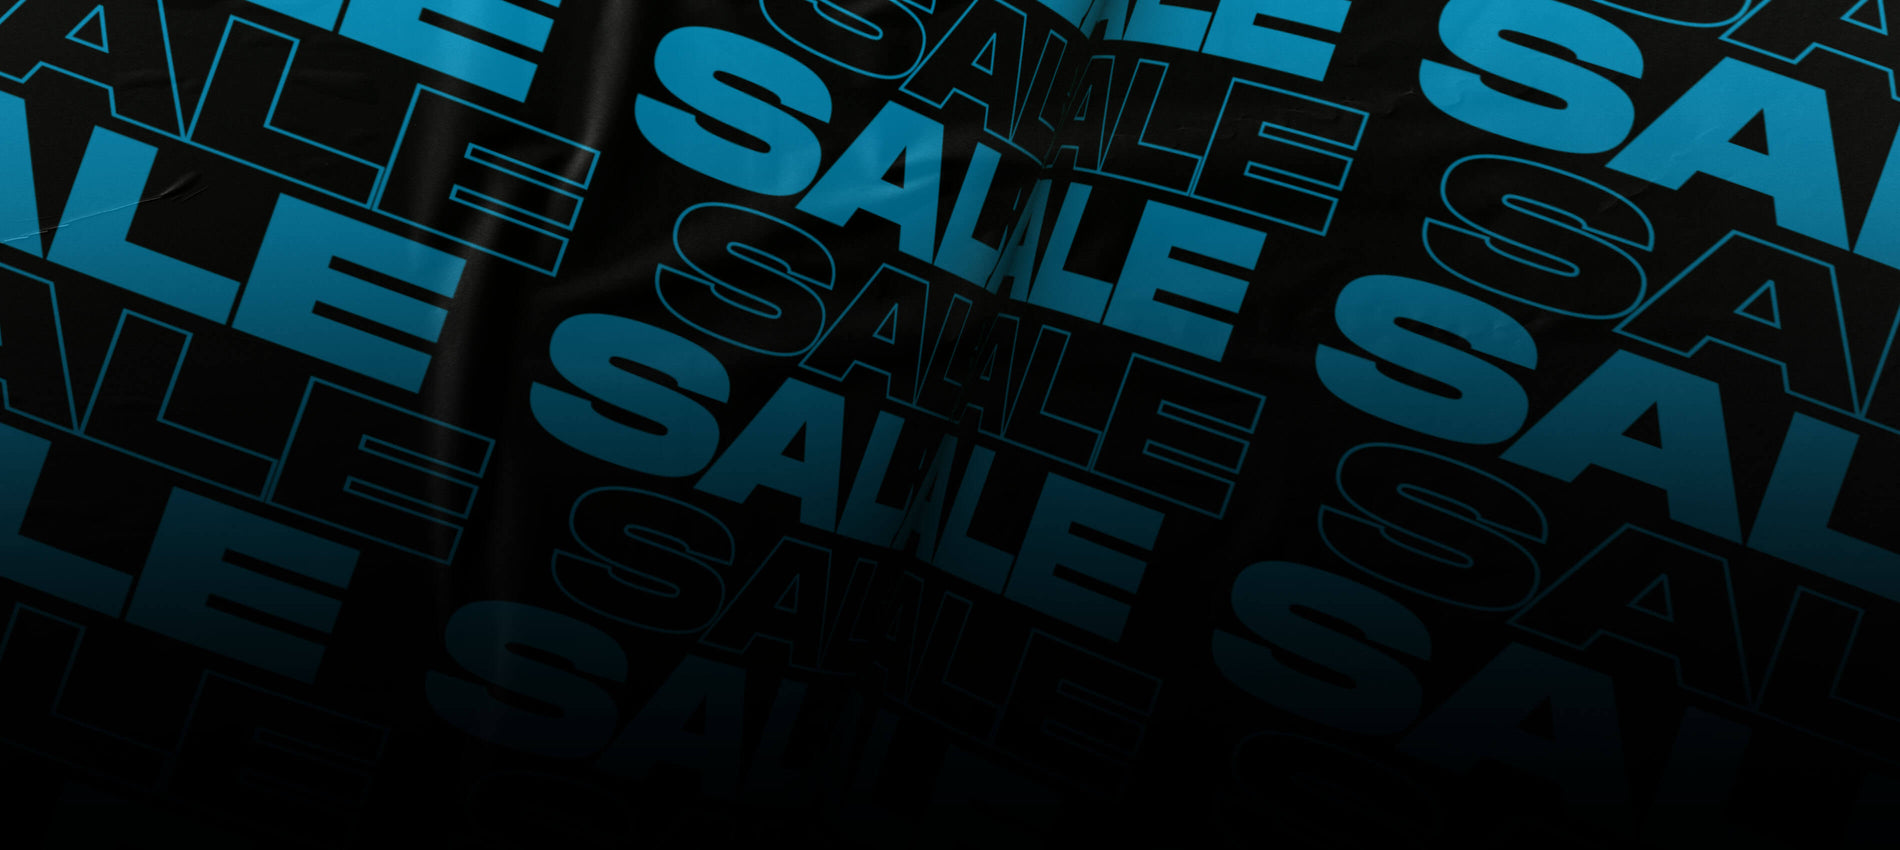 A genreic sale banner with repeated text of sale. Black background with blue text.